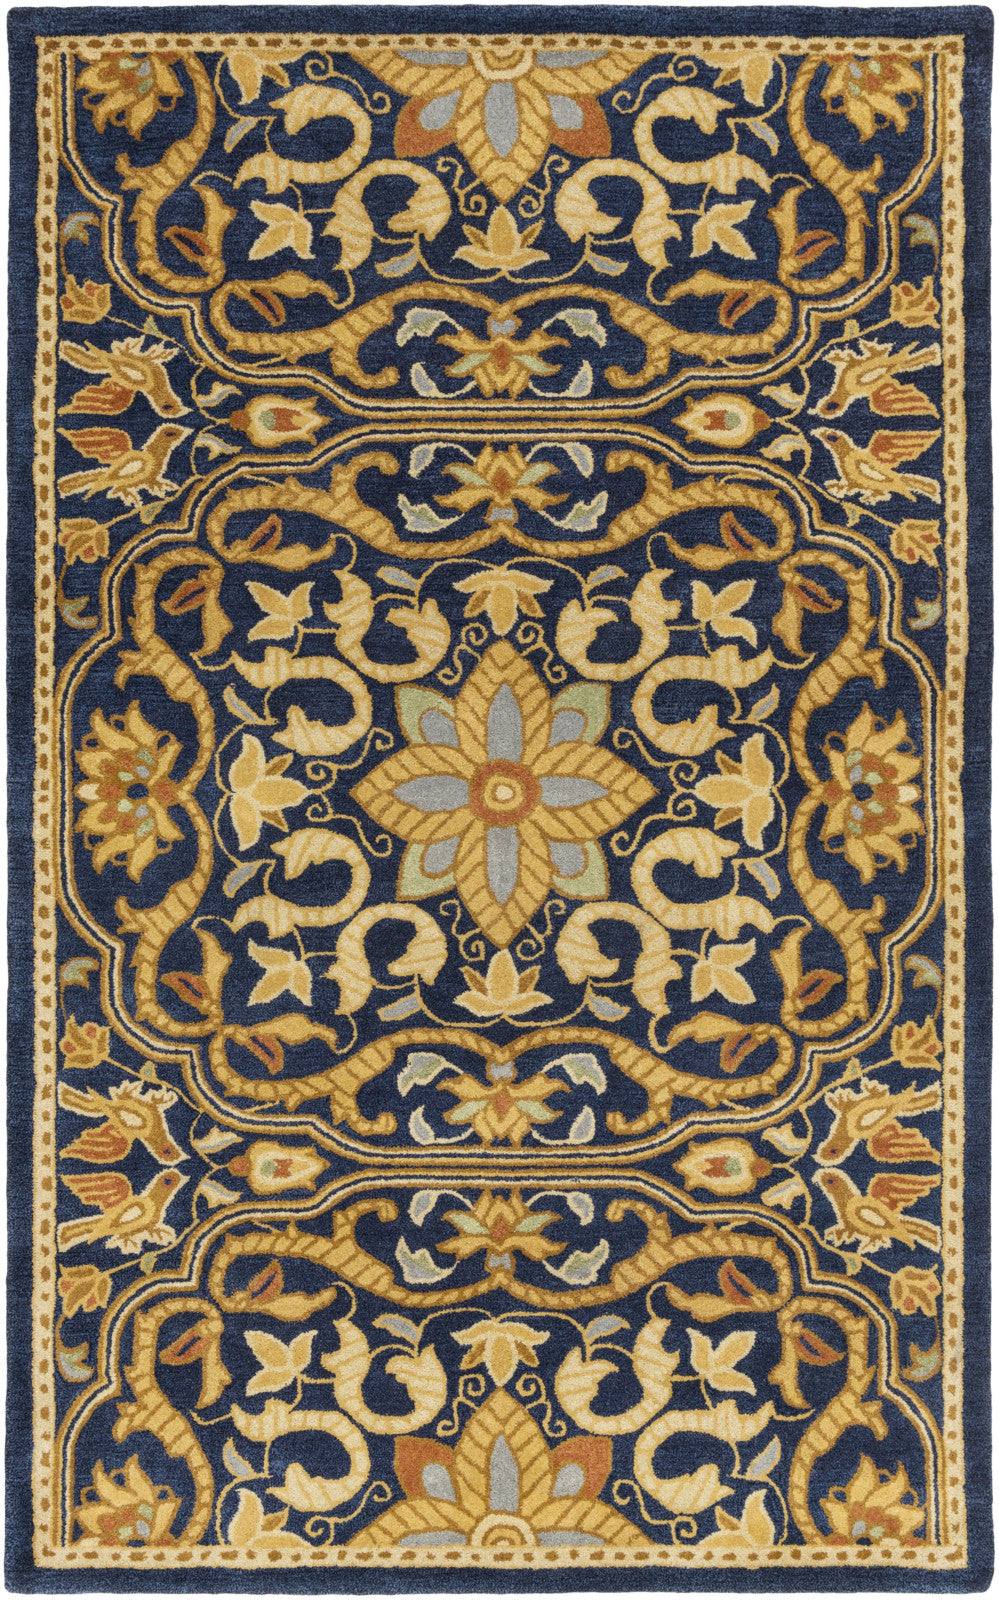 Surya SMI-2165 Blue Hand Tufted Area Rug by Smithsonian